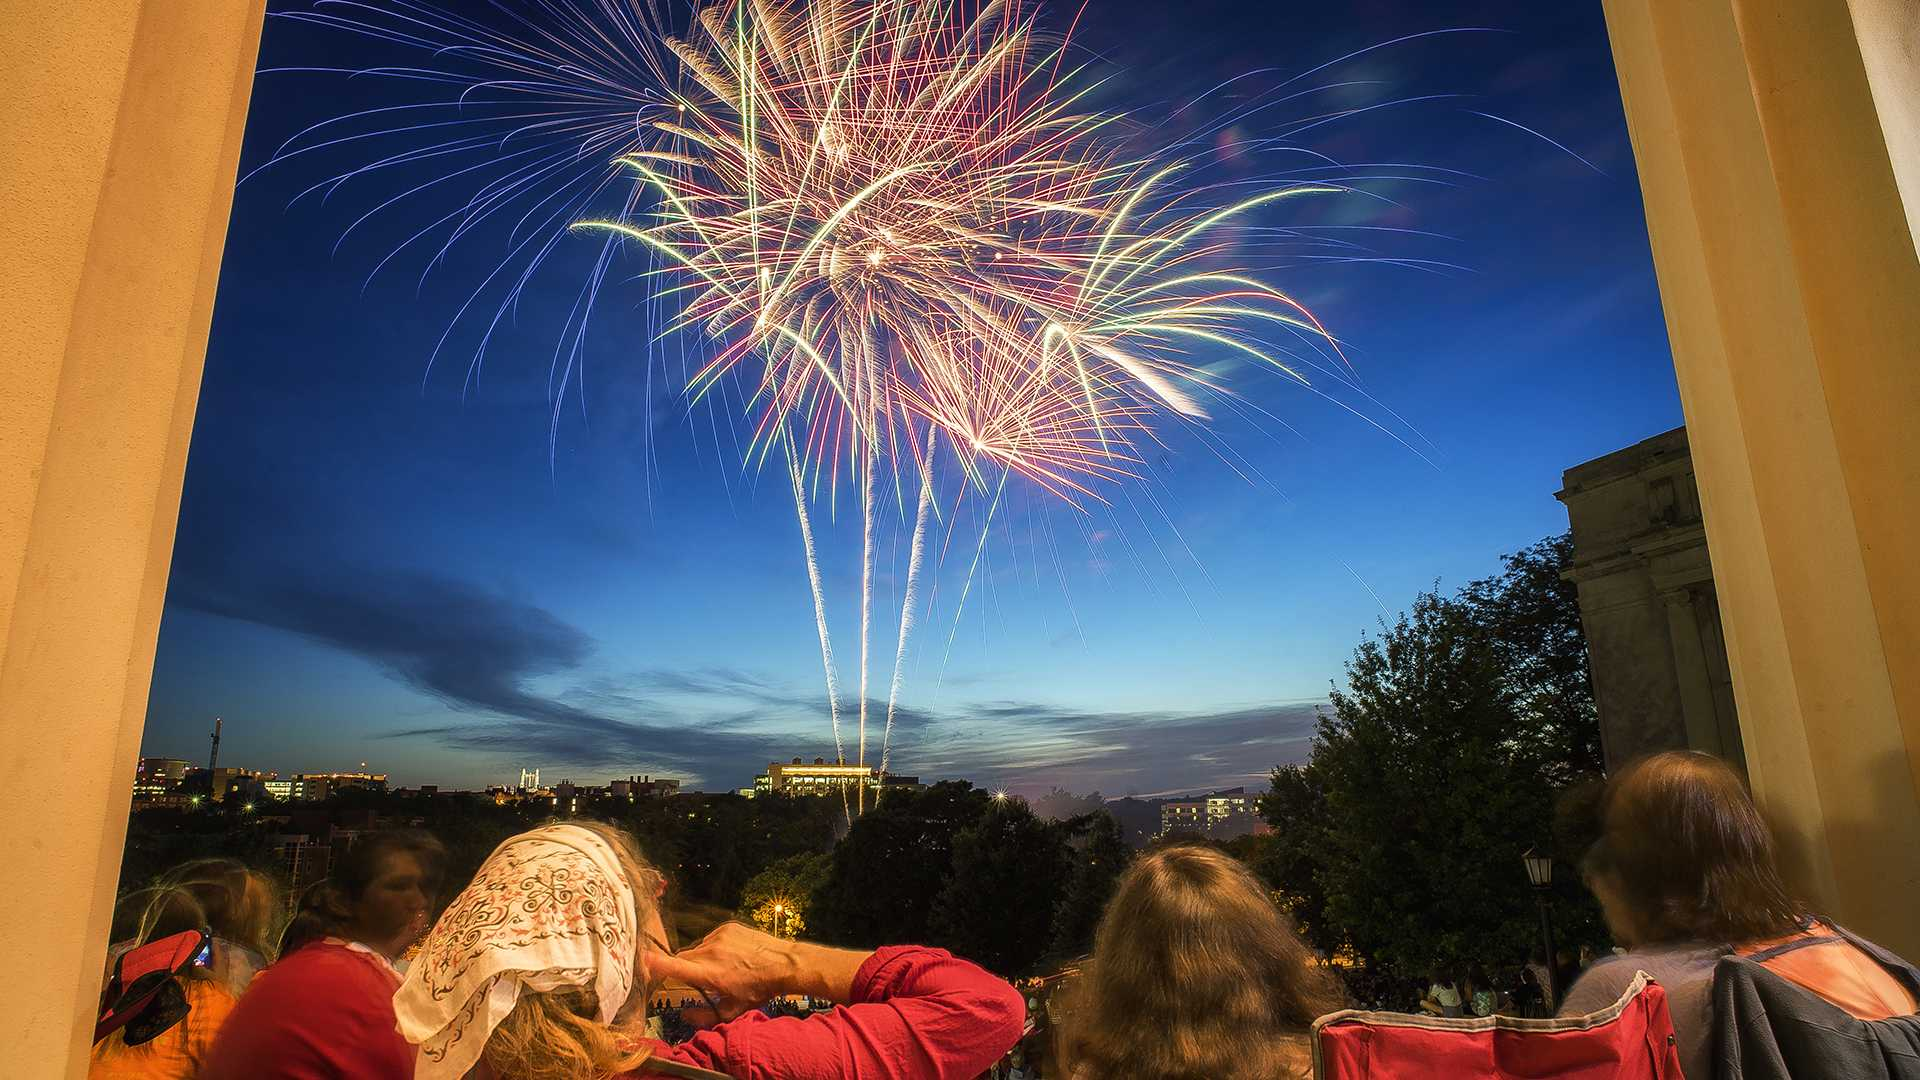 New fireworks sales regulations come to Iowa City